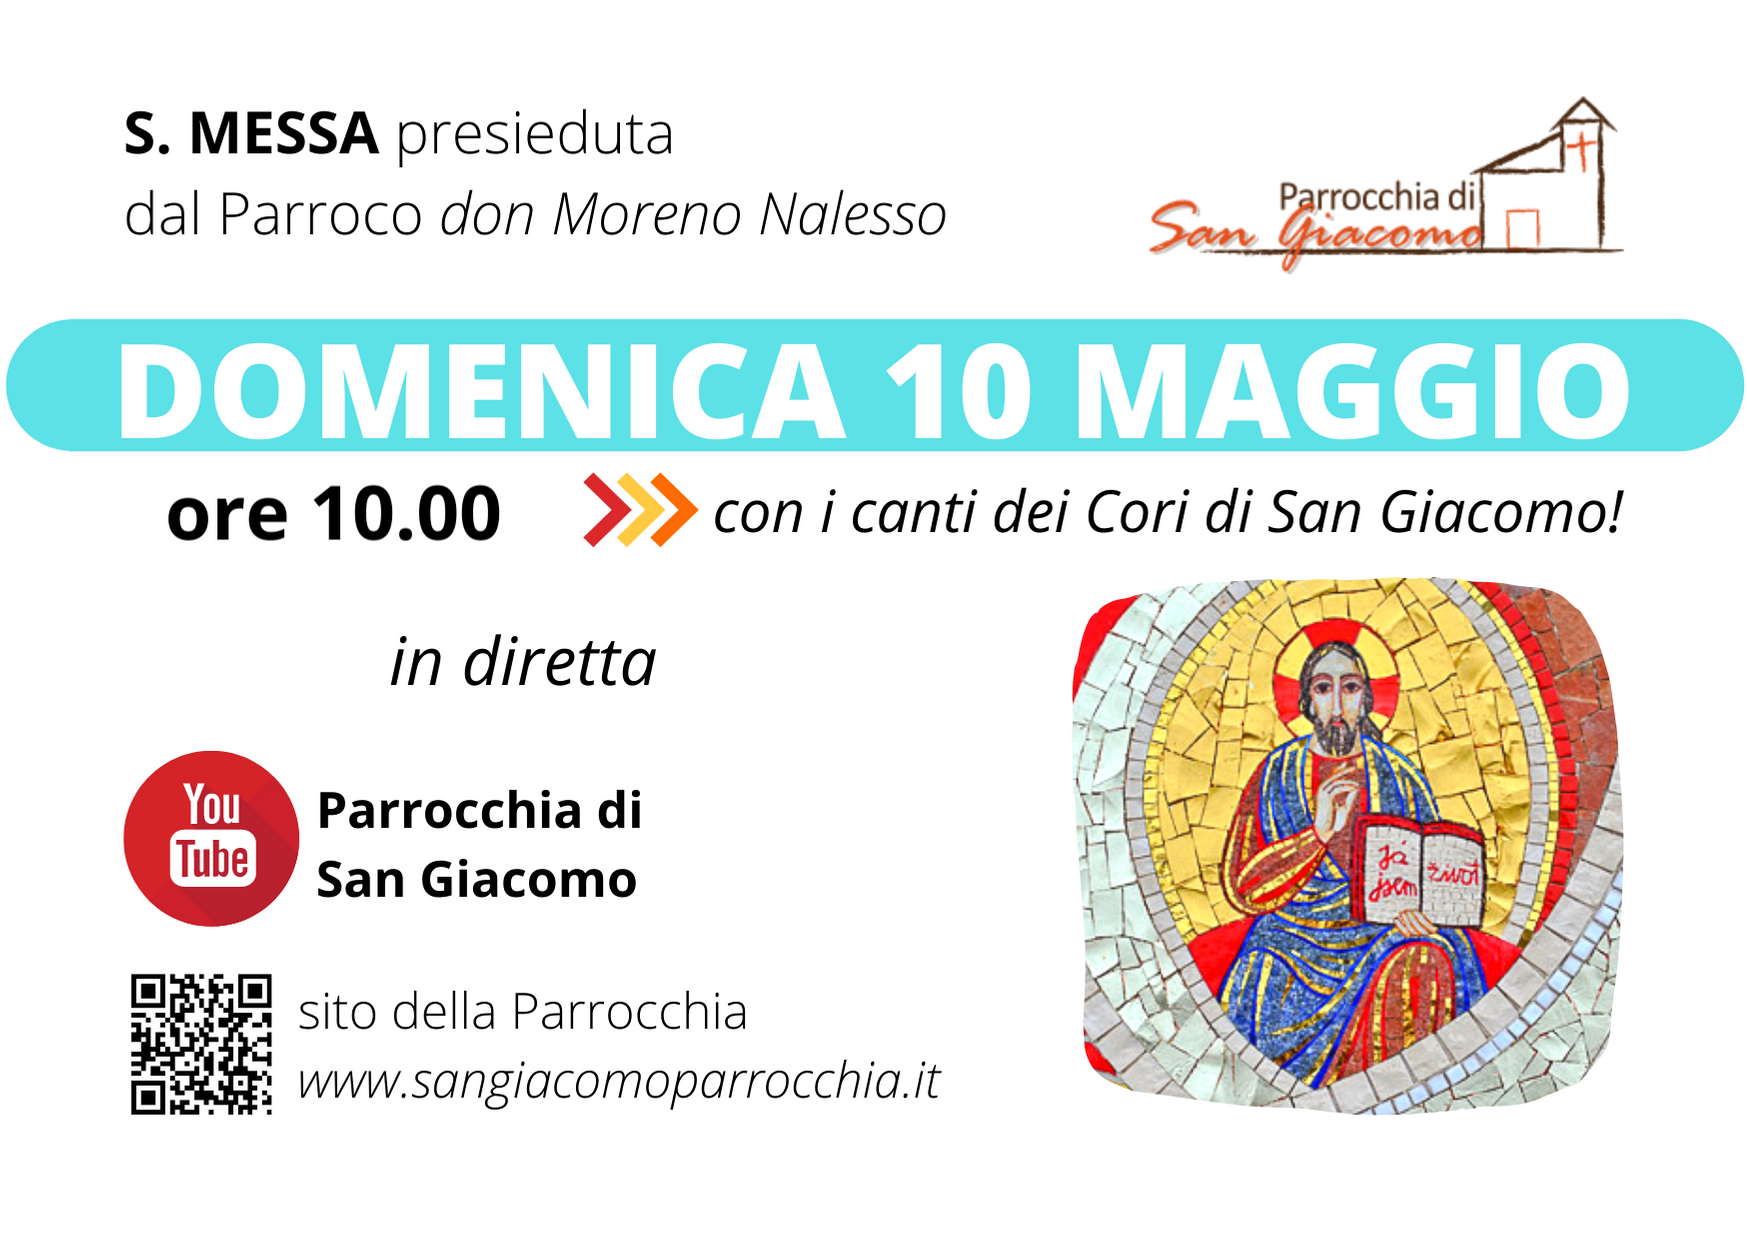 S. MESSA IN STREAMING 10 MAGGIO